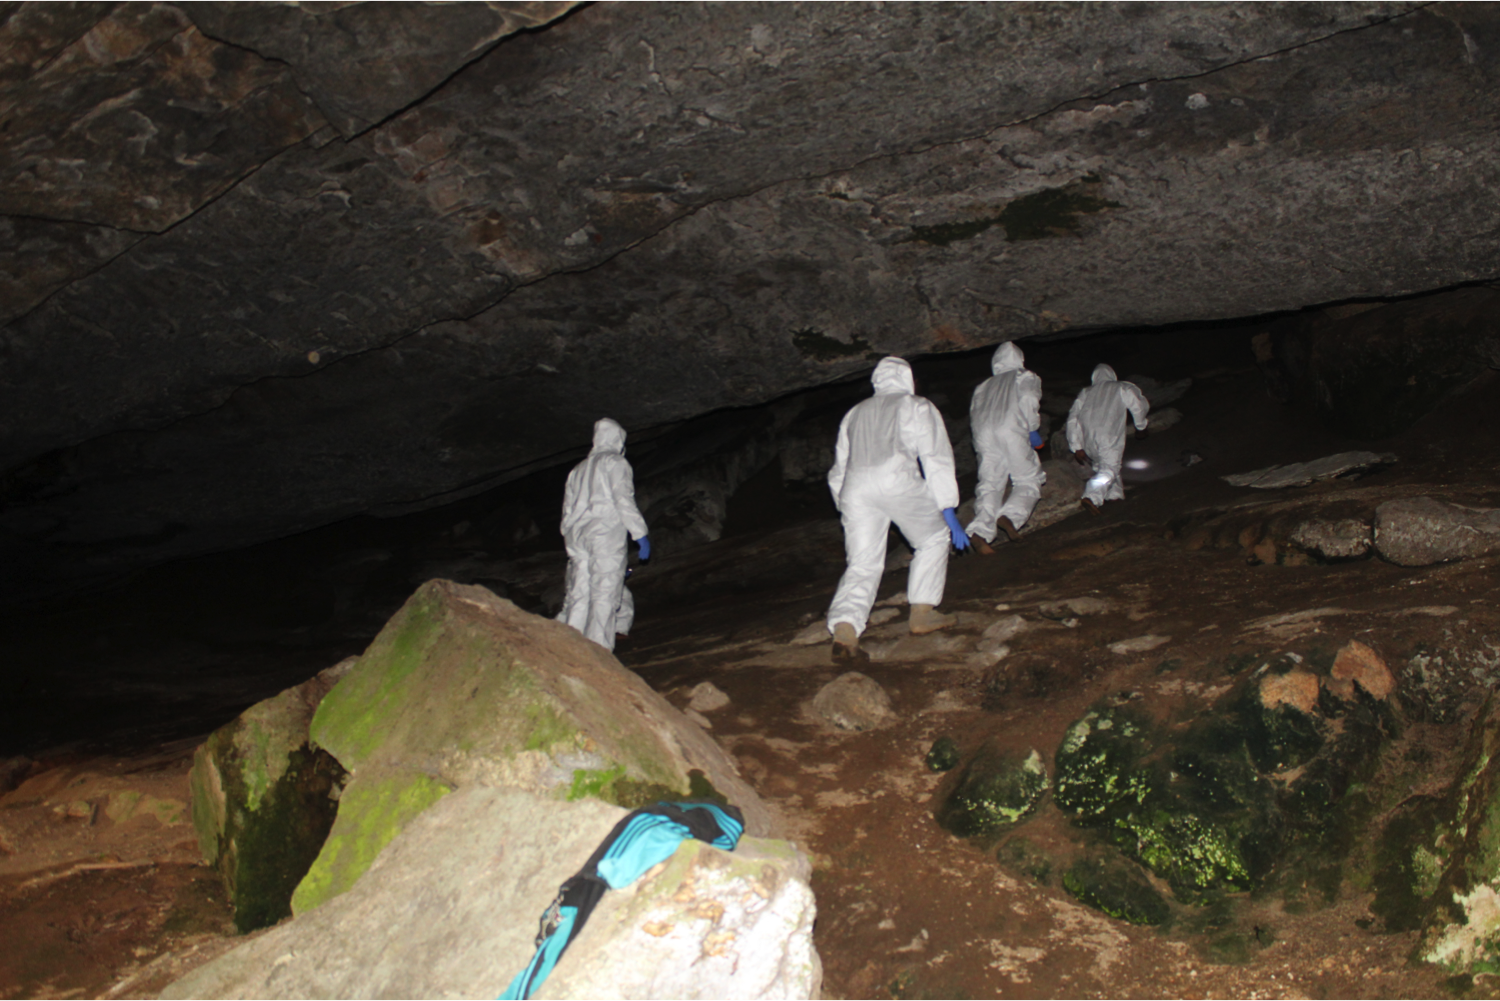 The team makes their way up the cave to take a peak inside